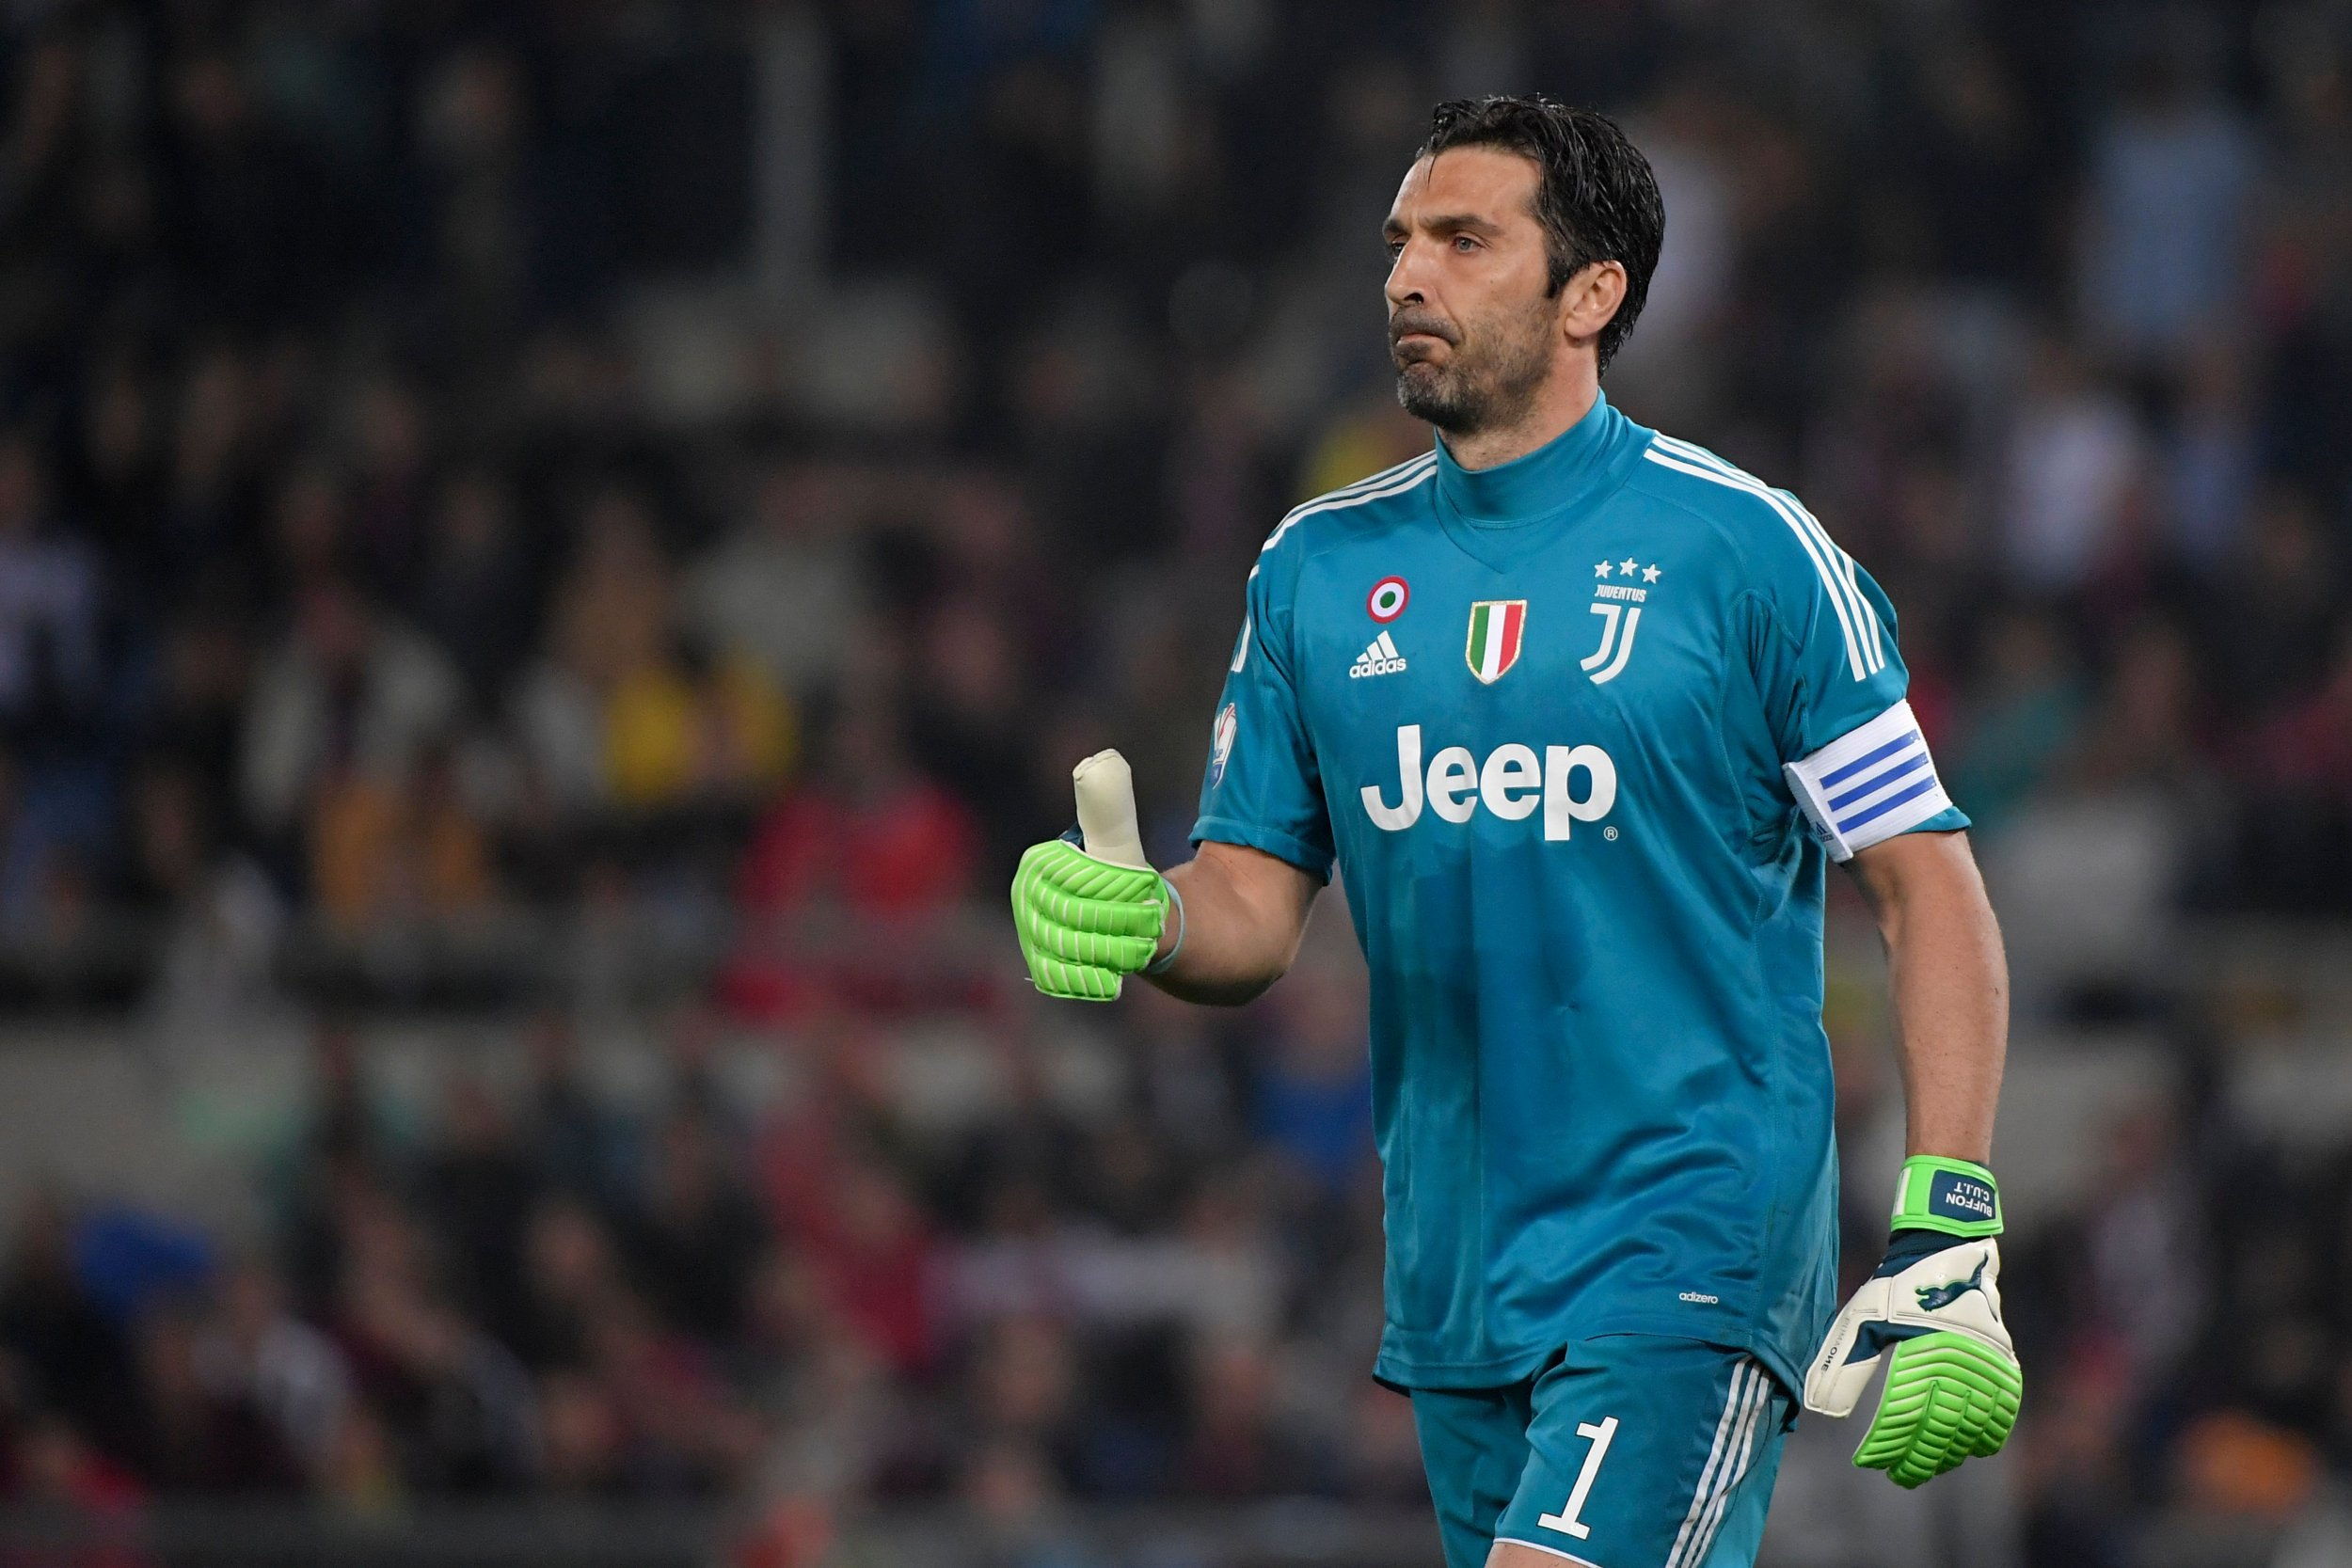 reputable site 50bf0 64b2f Gianluigi Buffon Retirement? Soccer Legend to Leave Juventus ...